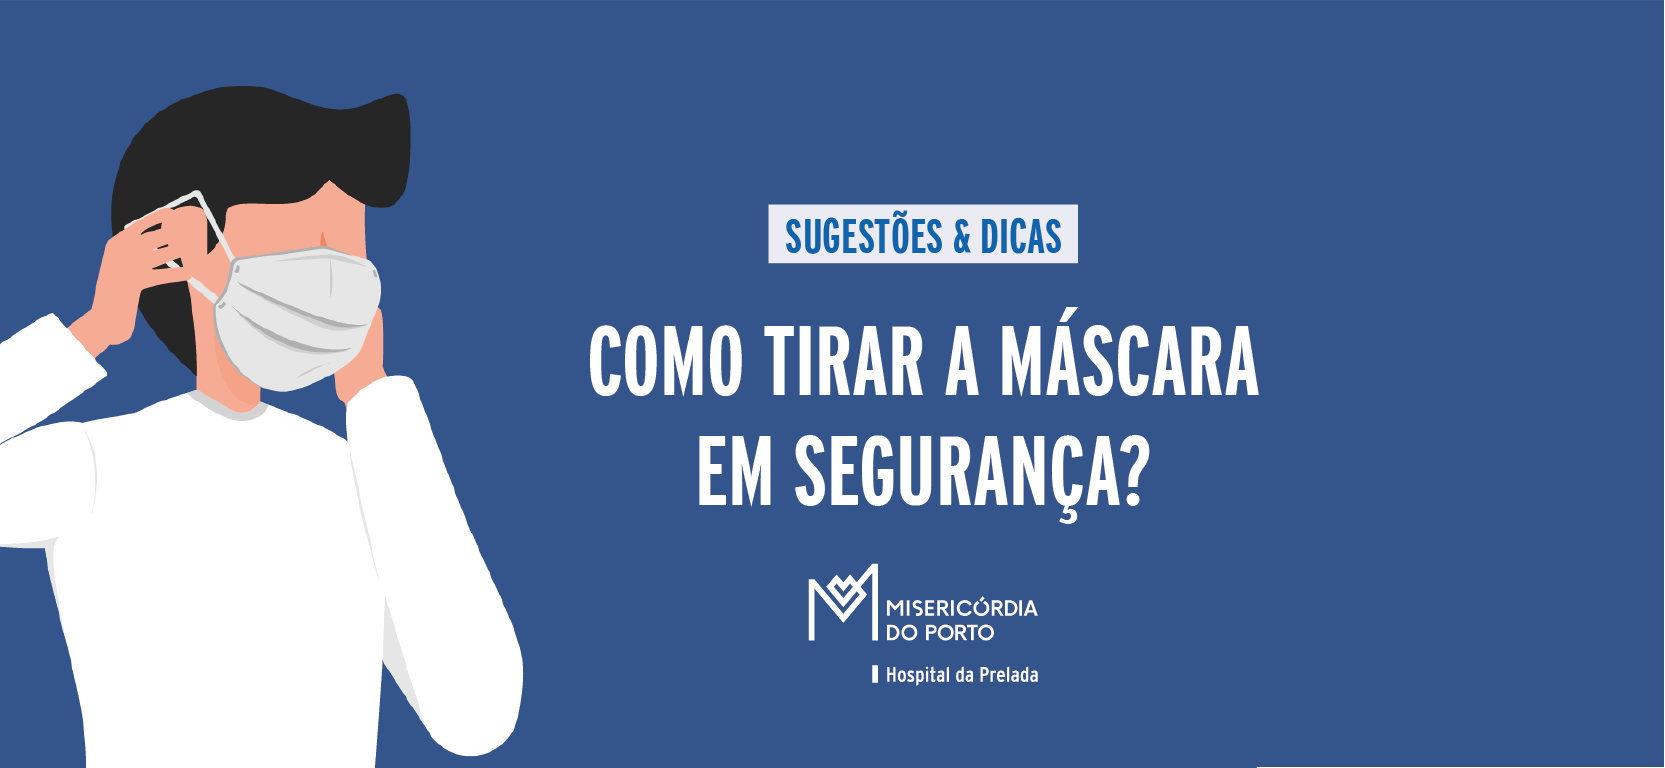 https://www.scmp.pt/assets/misc/img/noticias/2020/2020-04-17%20HP/HP%20Sugestoes%20e%20Dicas%20Mascara%20BANNER_2%20bannersite%20-%20sintomas.png